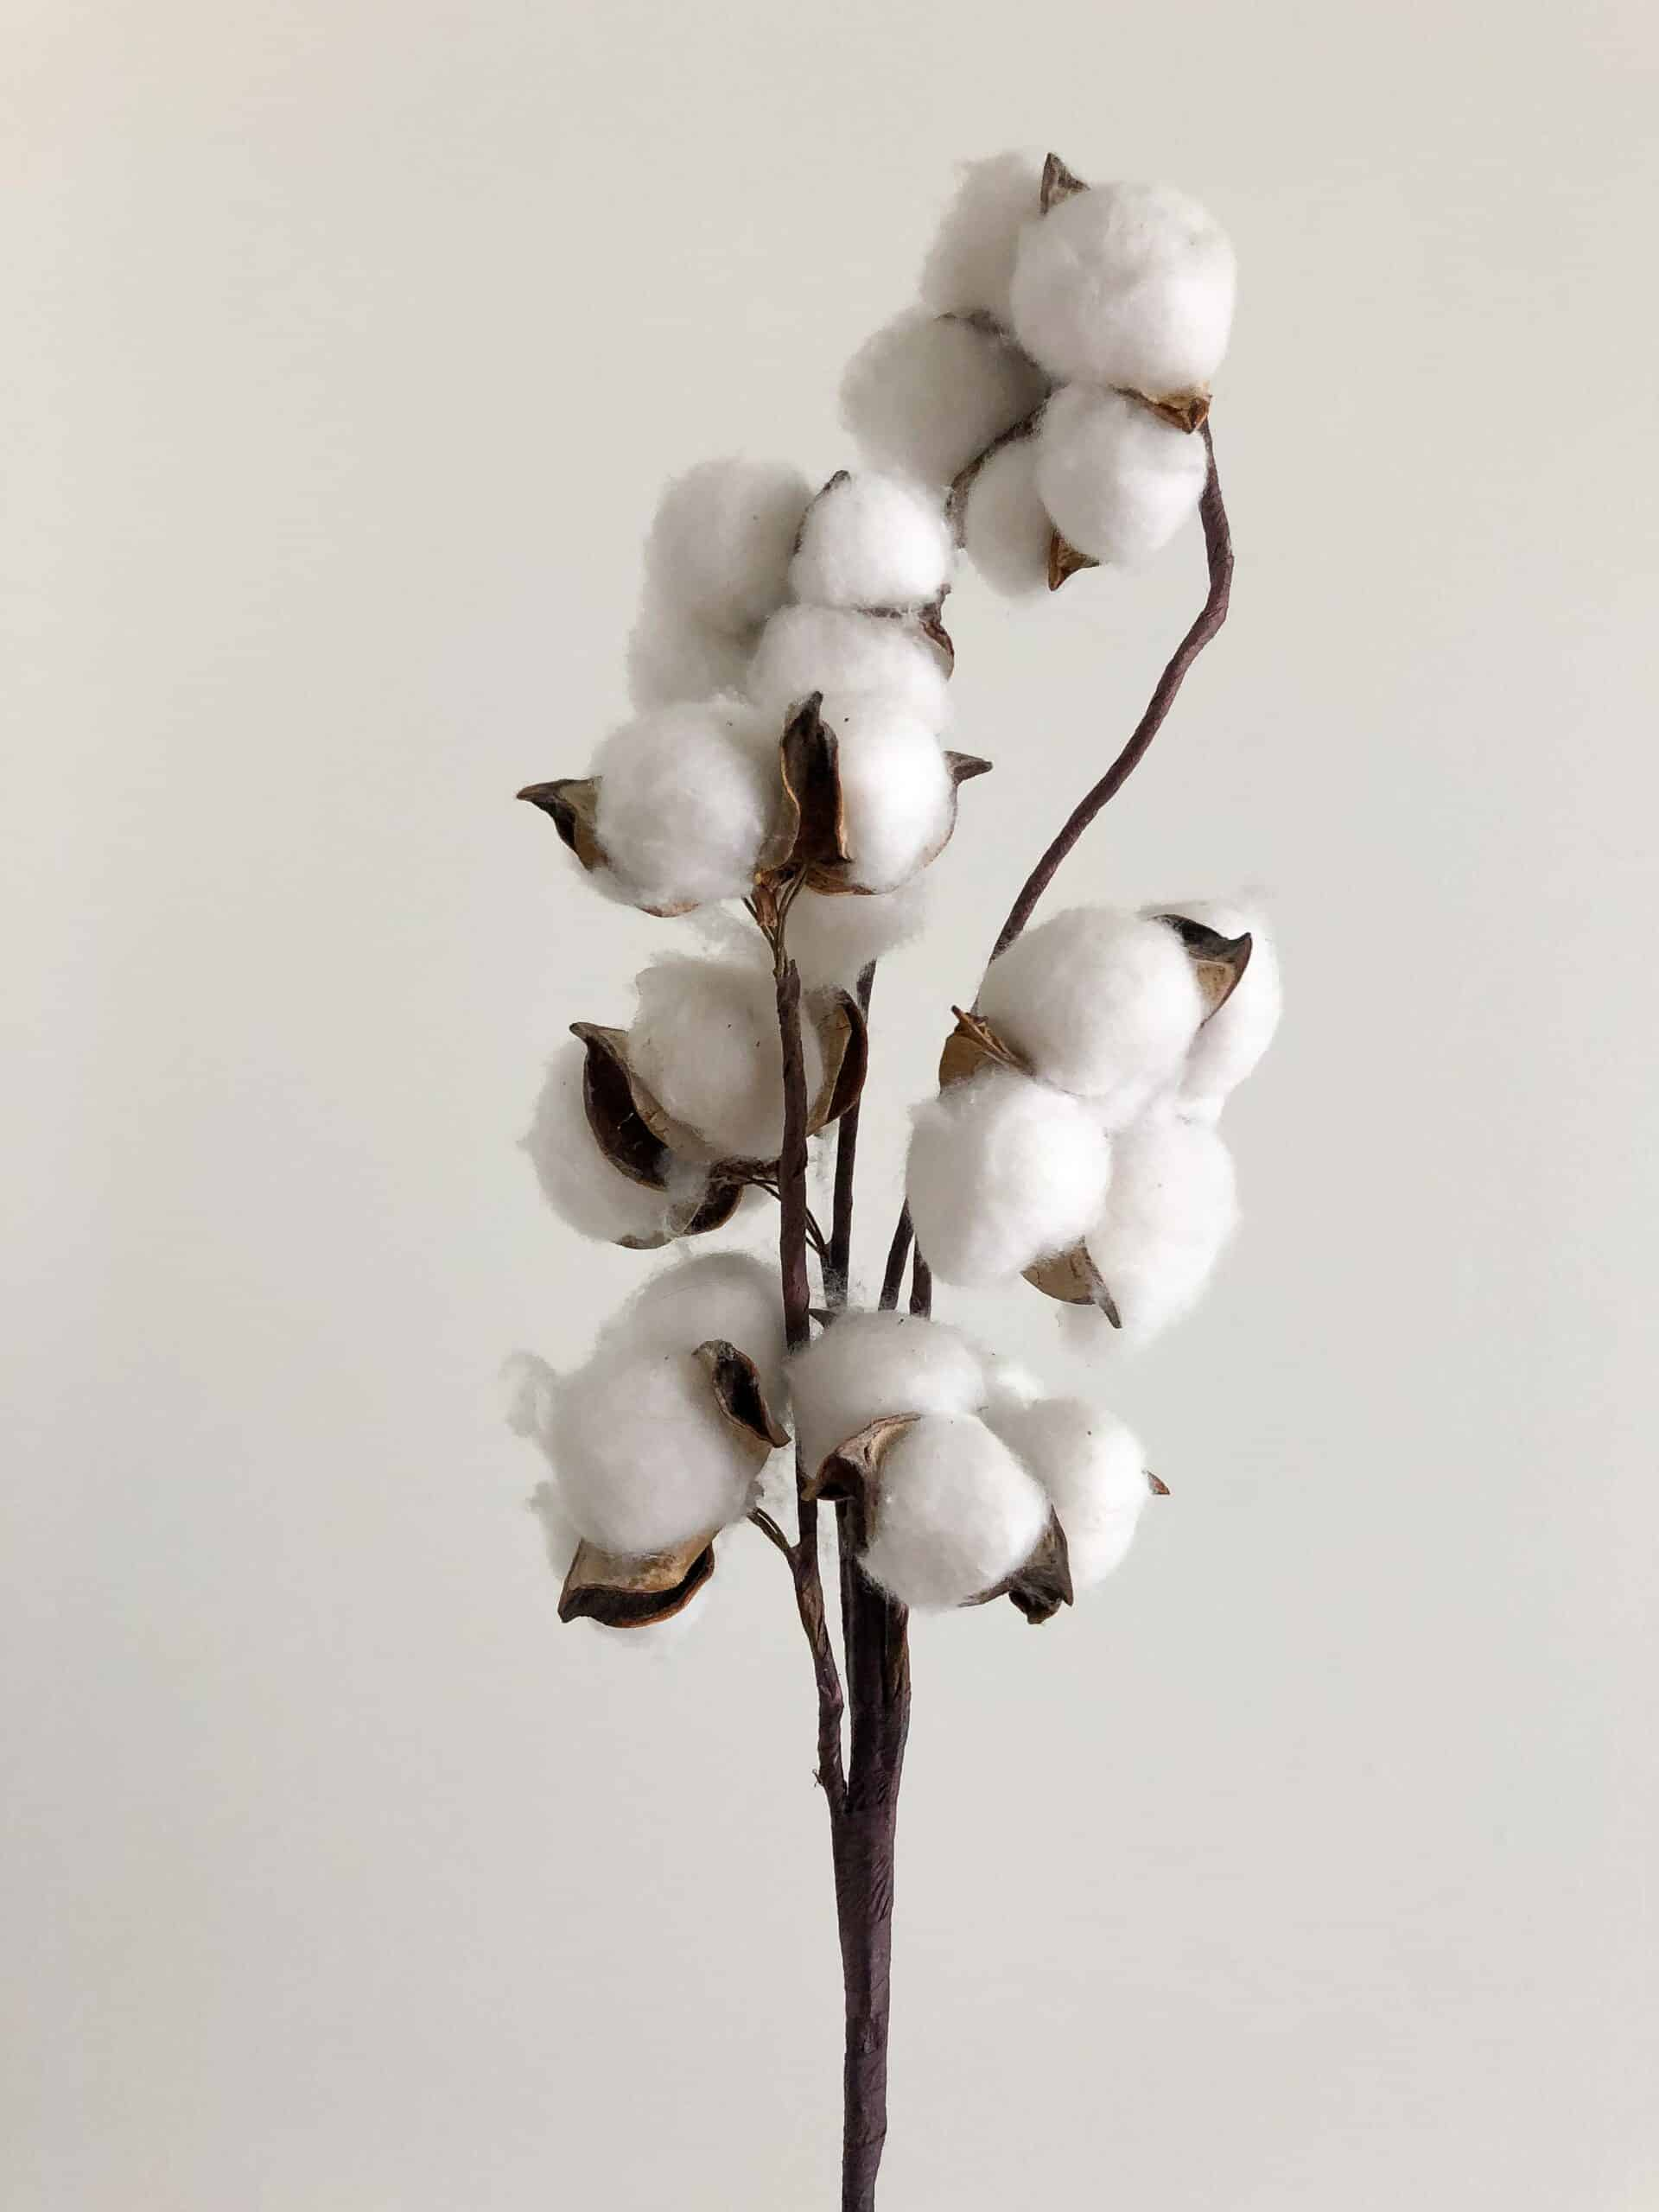 picture of cotton plant